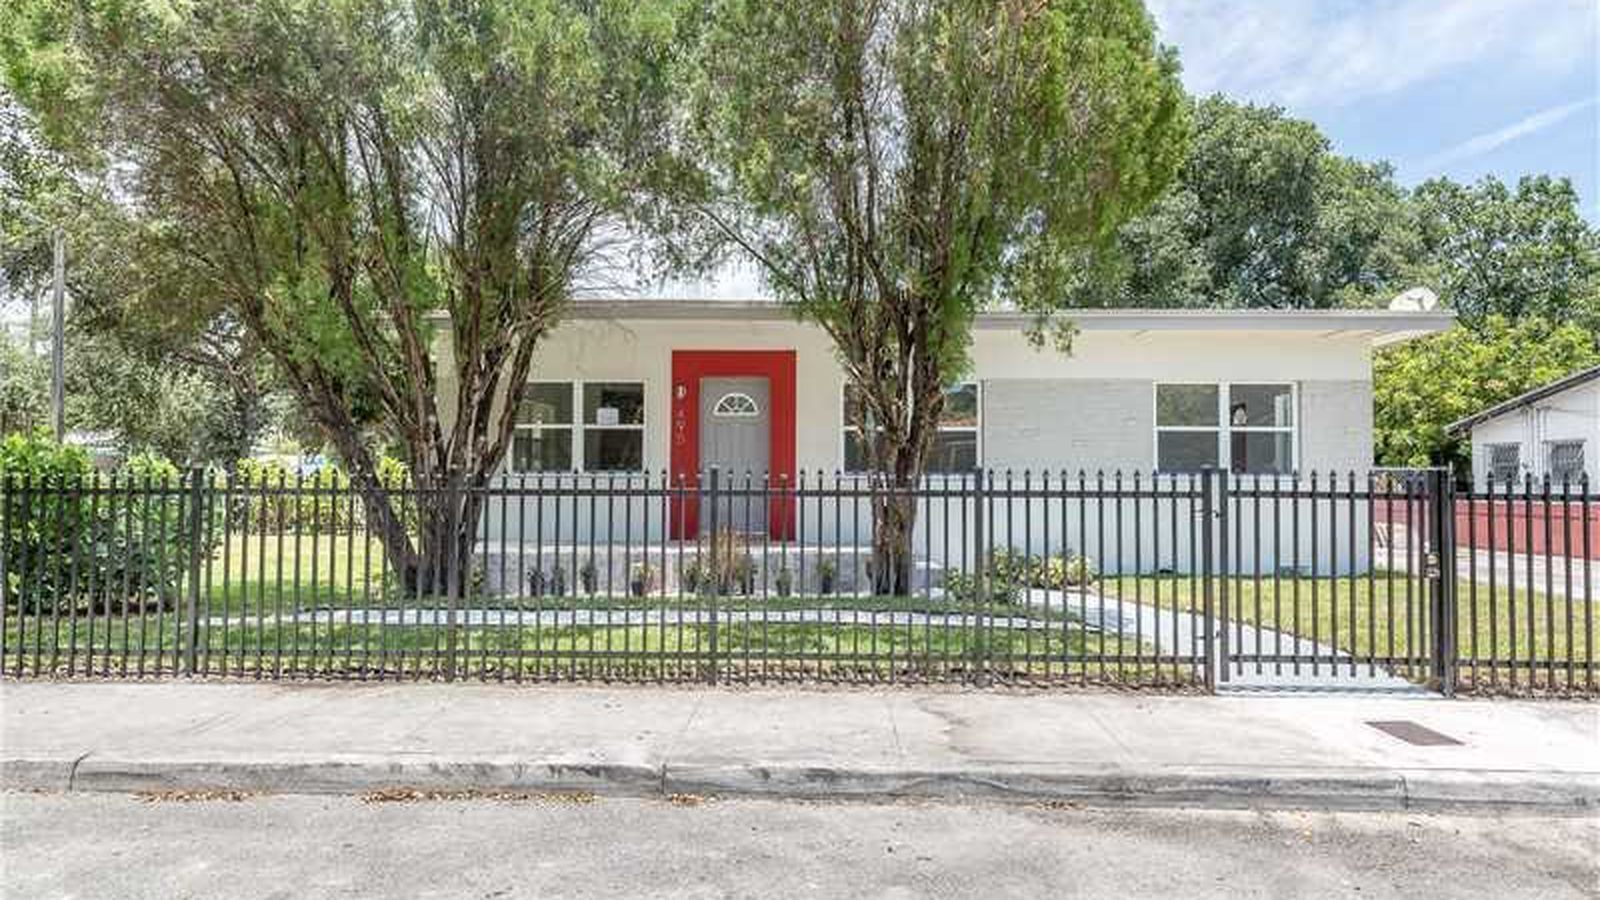 midcentury home nestled into the design district asks 309k curbed miami